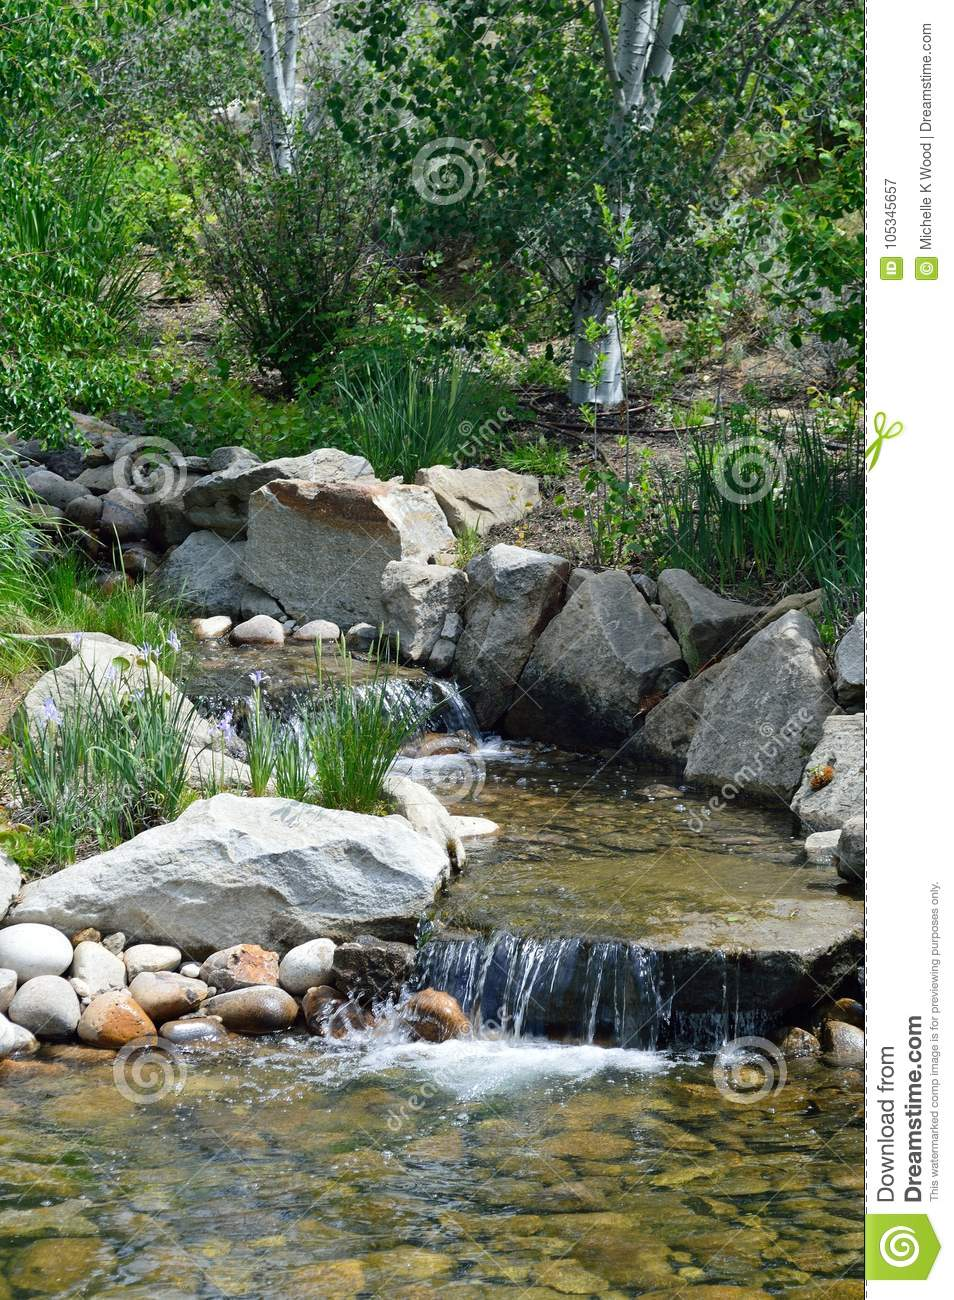 Two Waterfalls in a stream in the Boise, Idaho foothills.